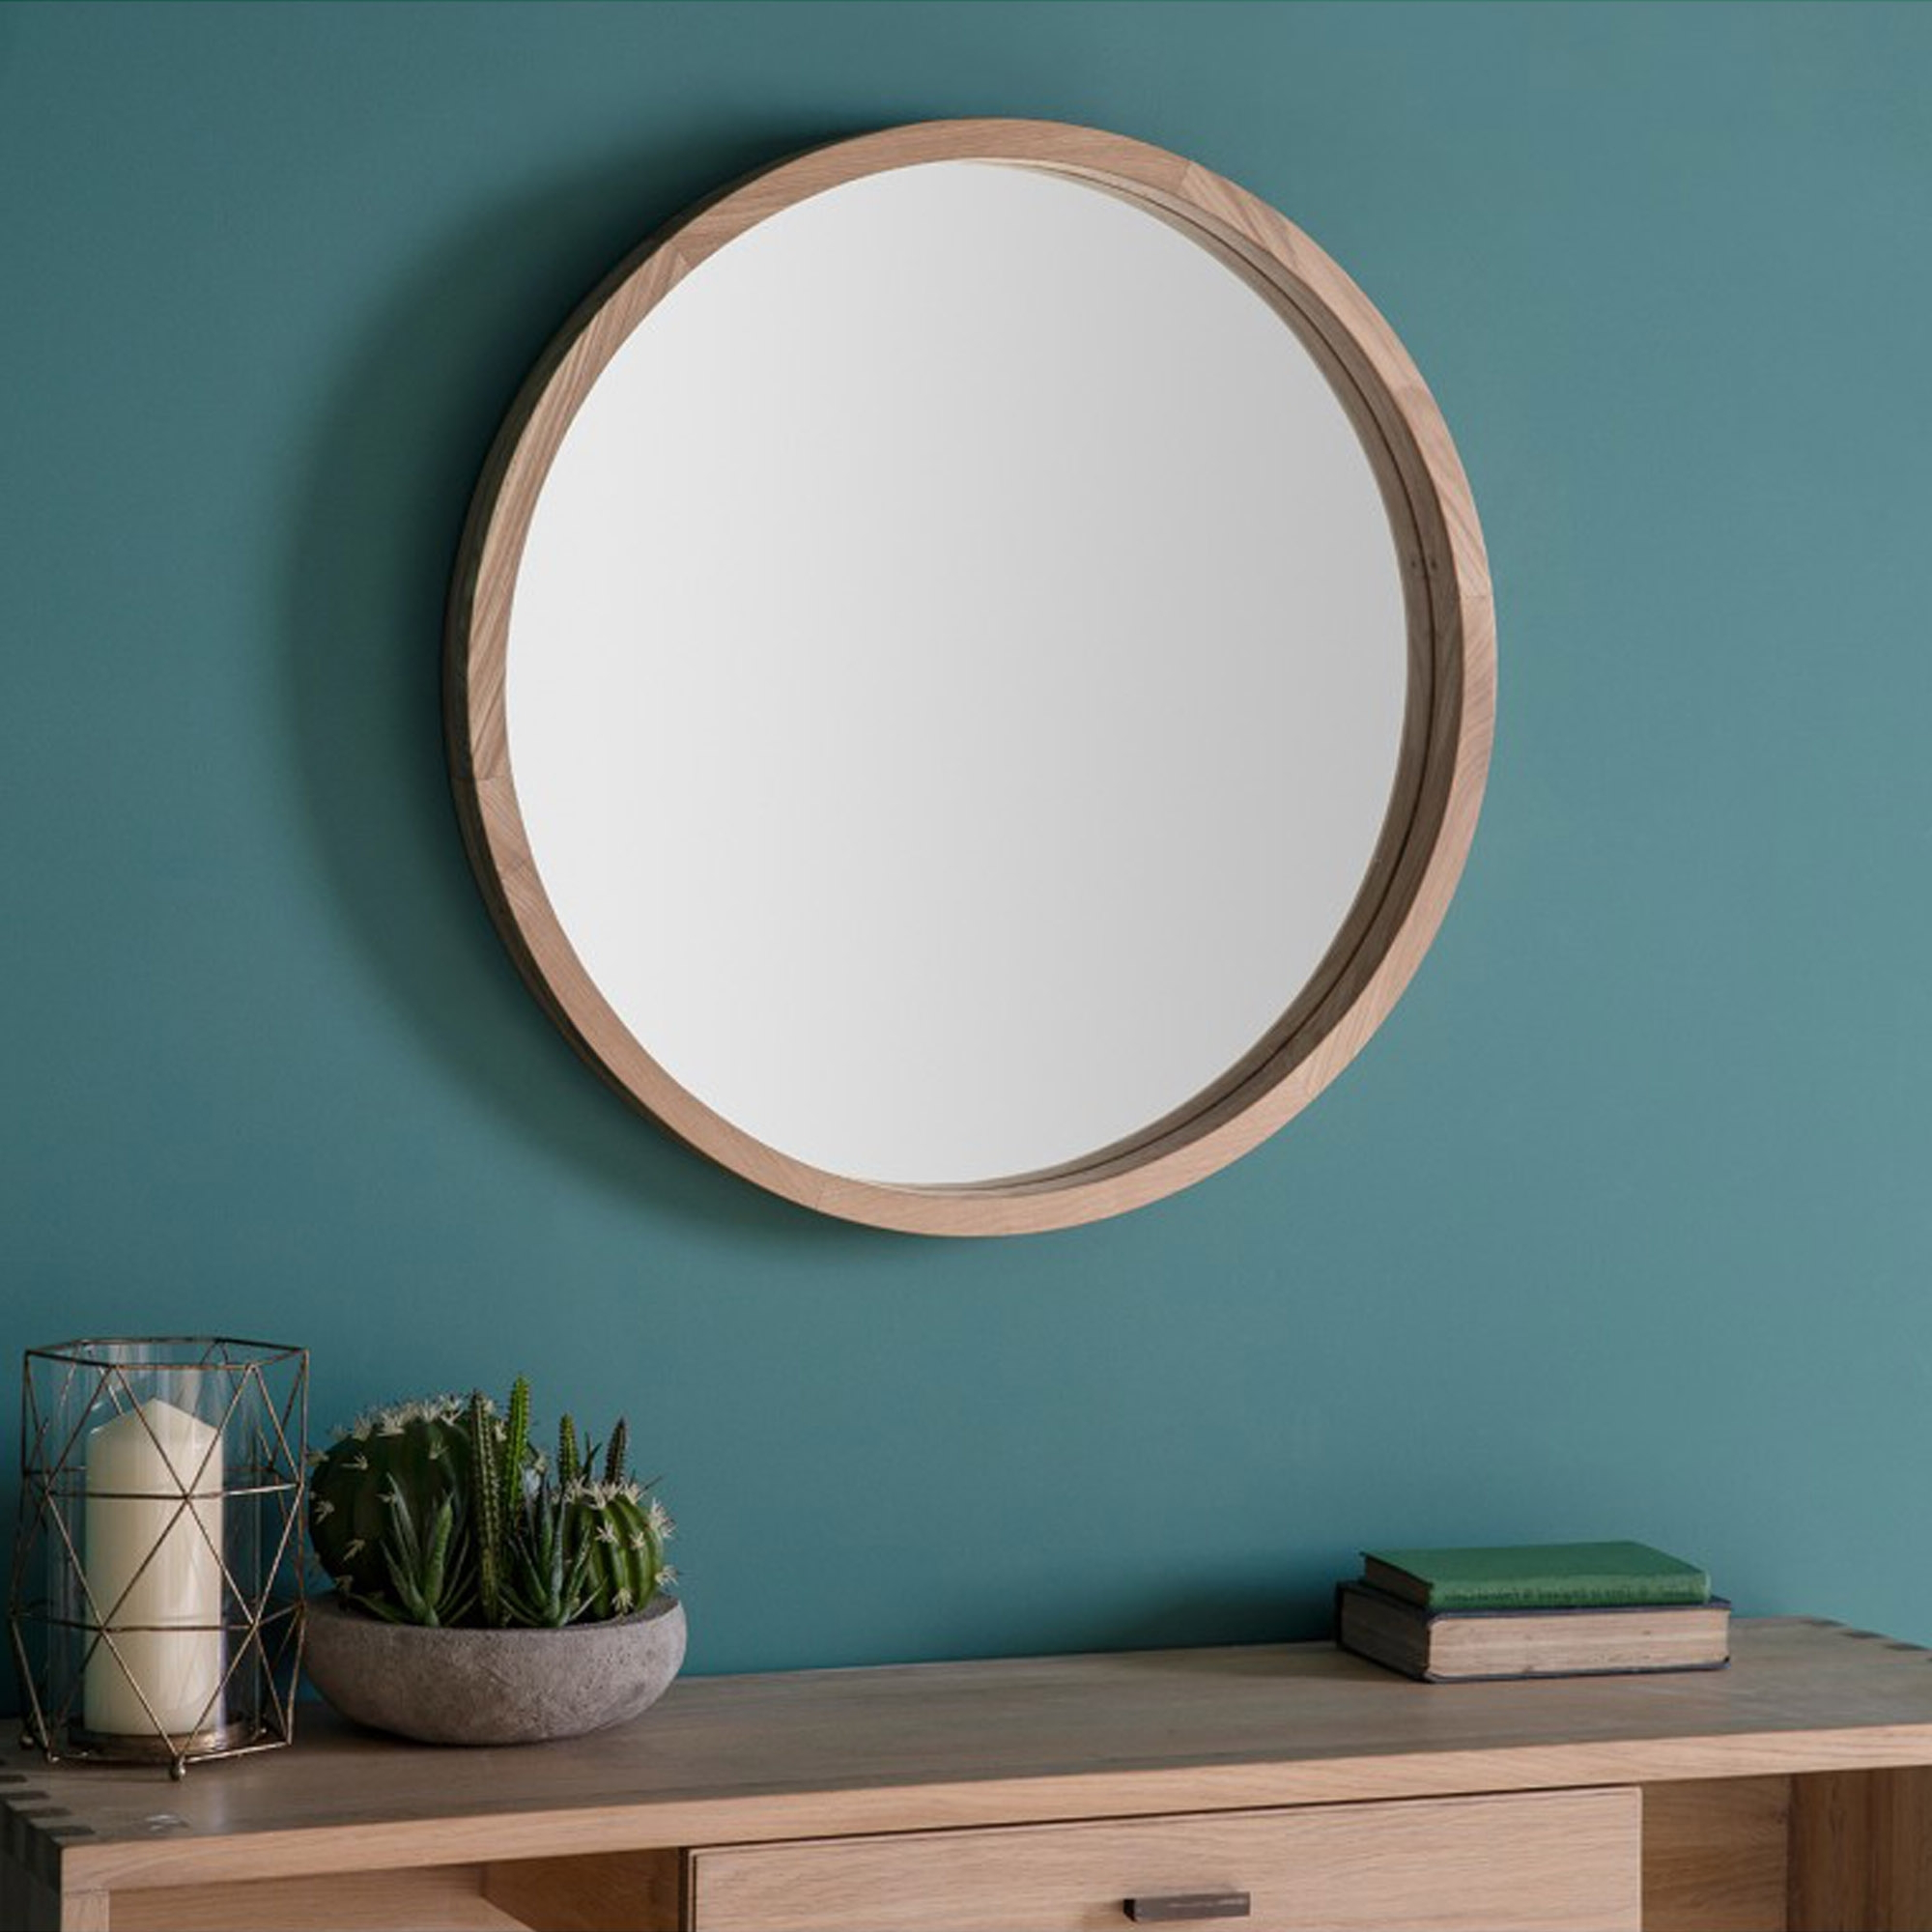 Bowman Small Round Wall Mirror With Well Known Circle Wall Mirrors (View 6 of 20)